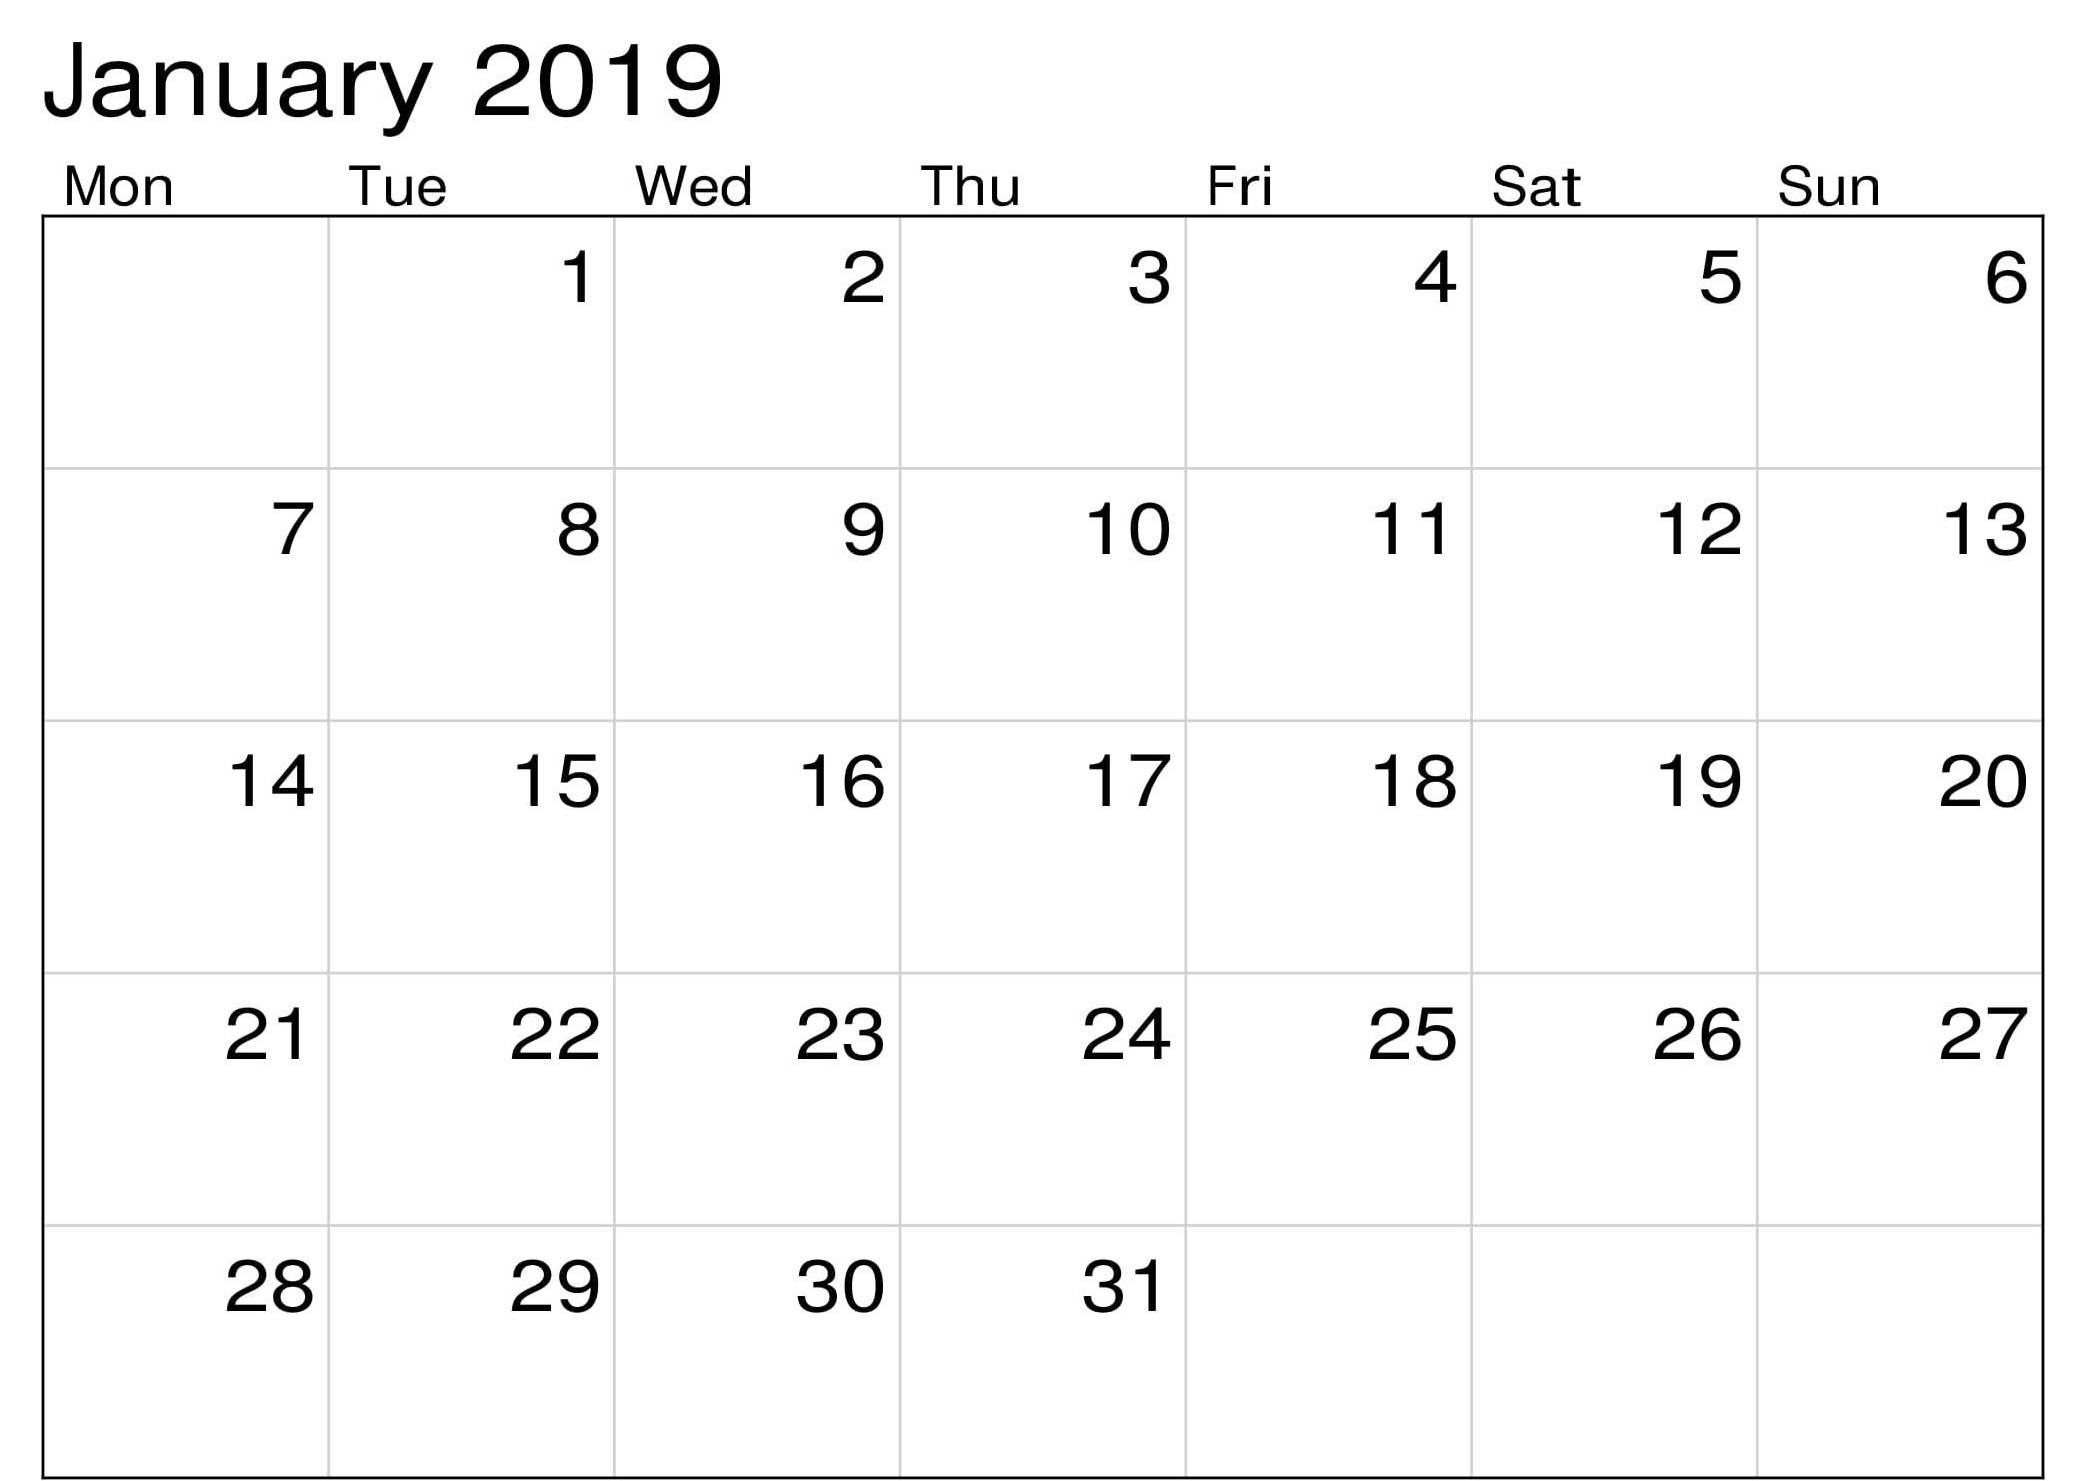 January 2019 Monthly Editable Calendar